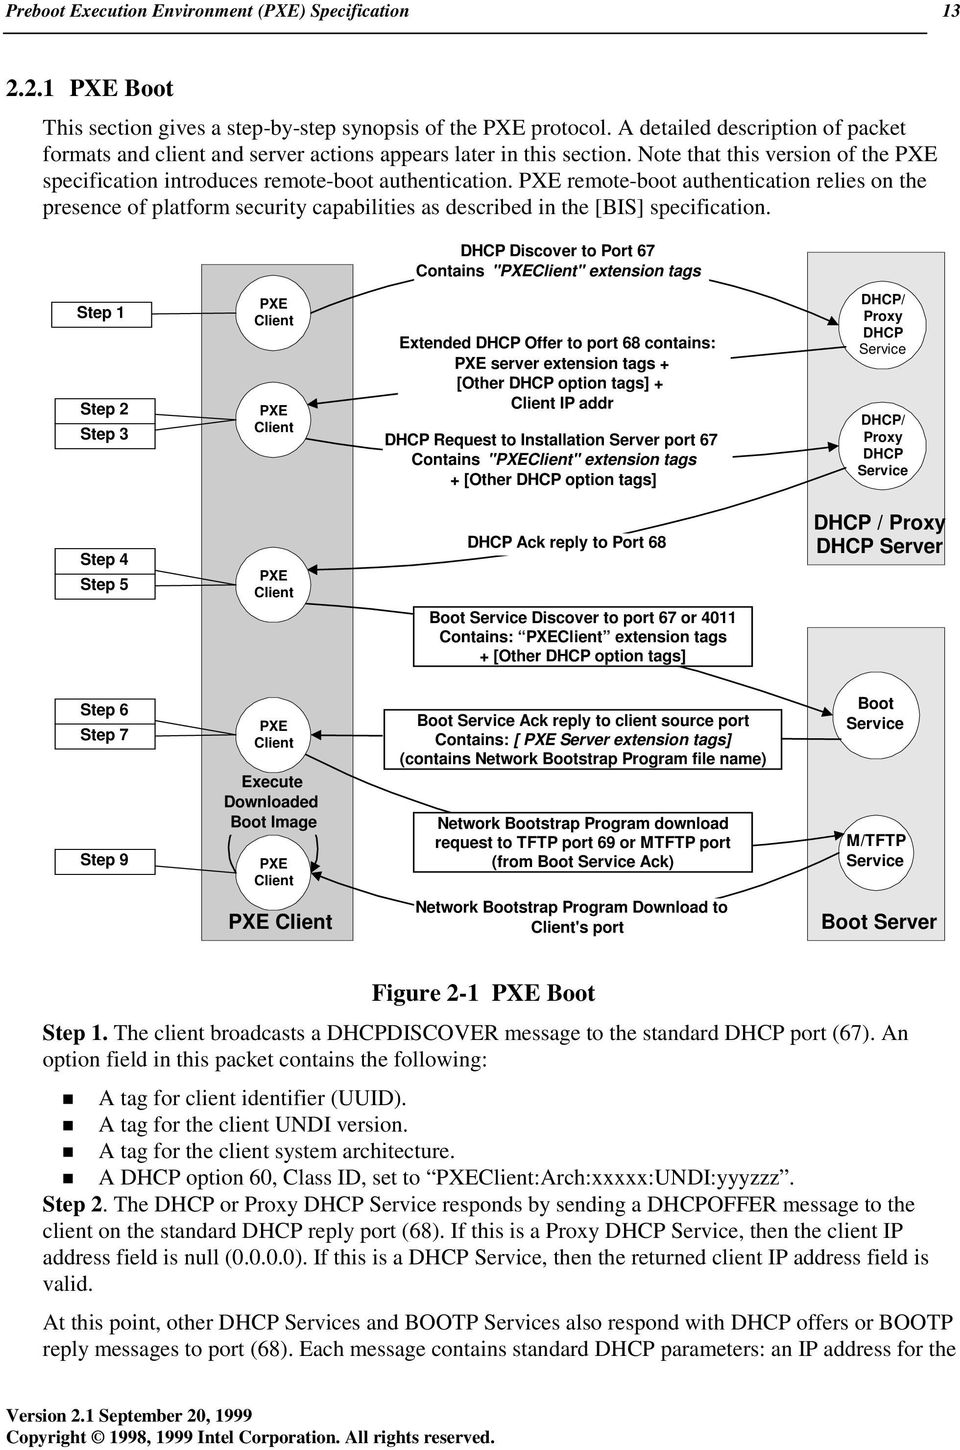 Preboot Execution Environment (PXE) Specification - PDF